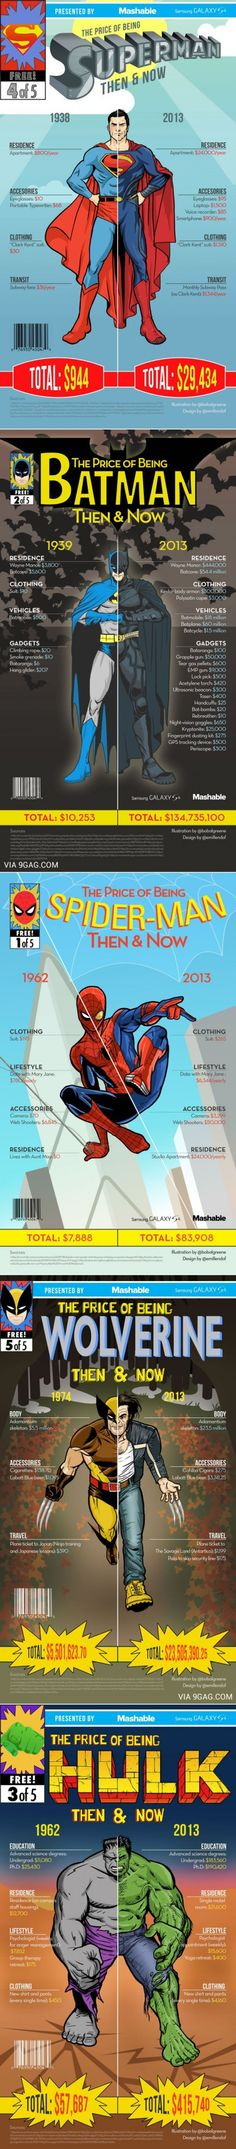 Price of being superhero then and now